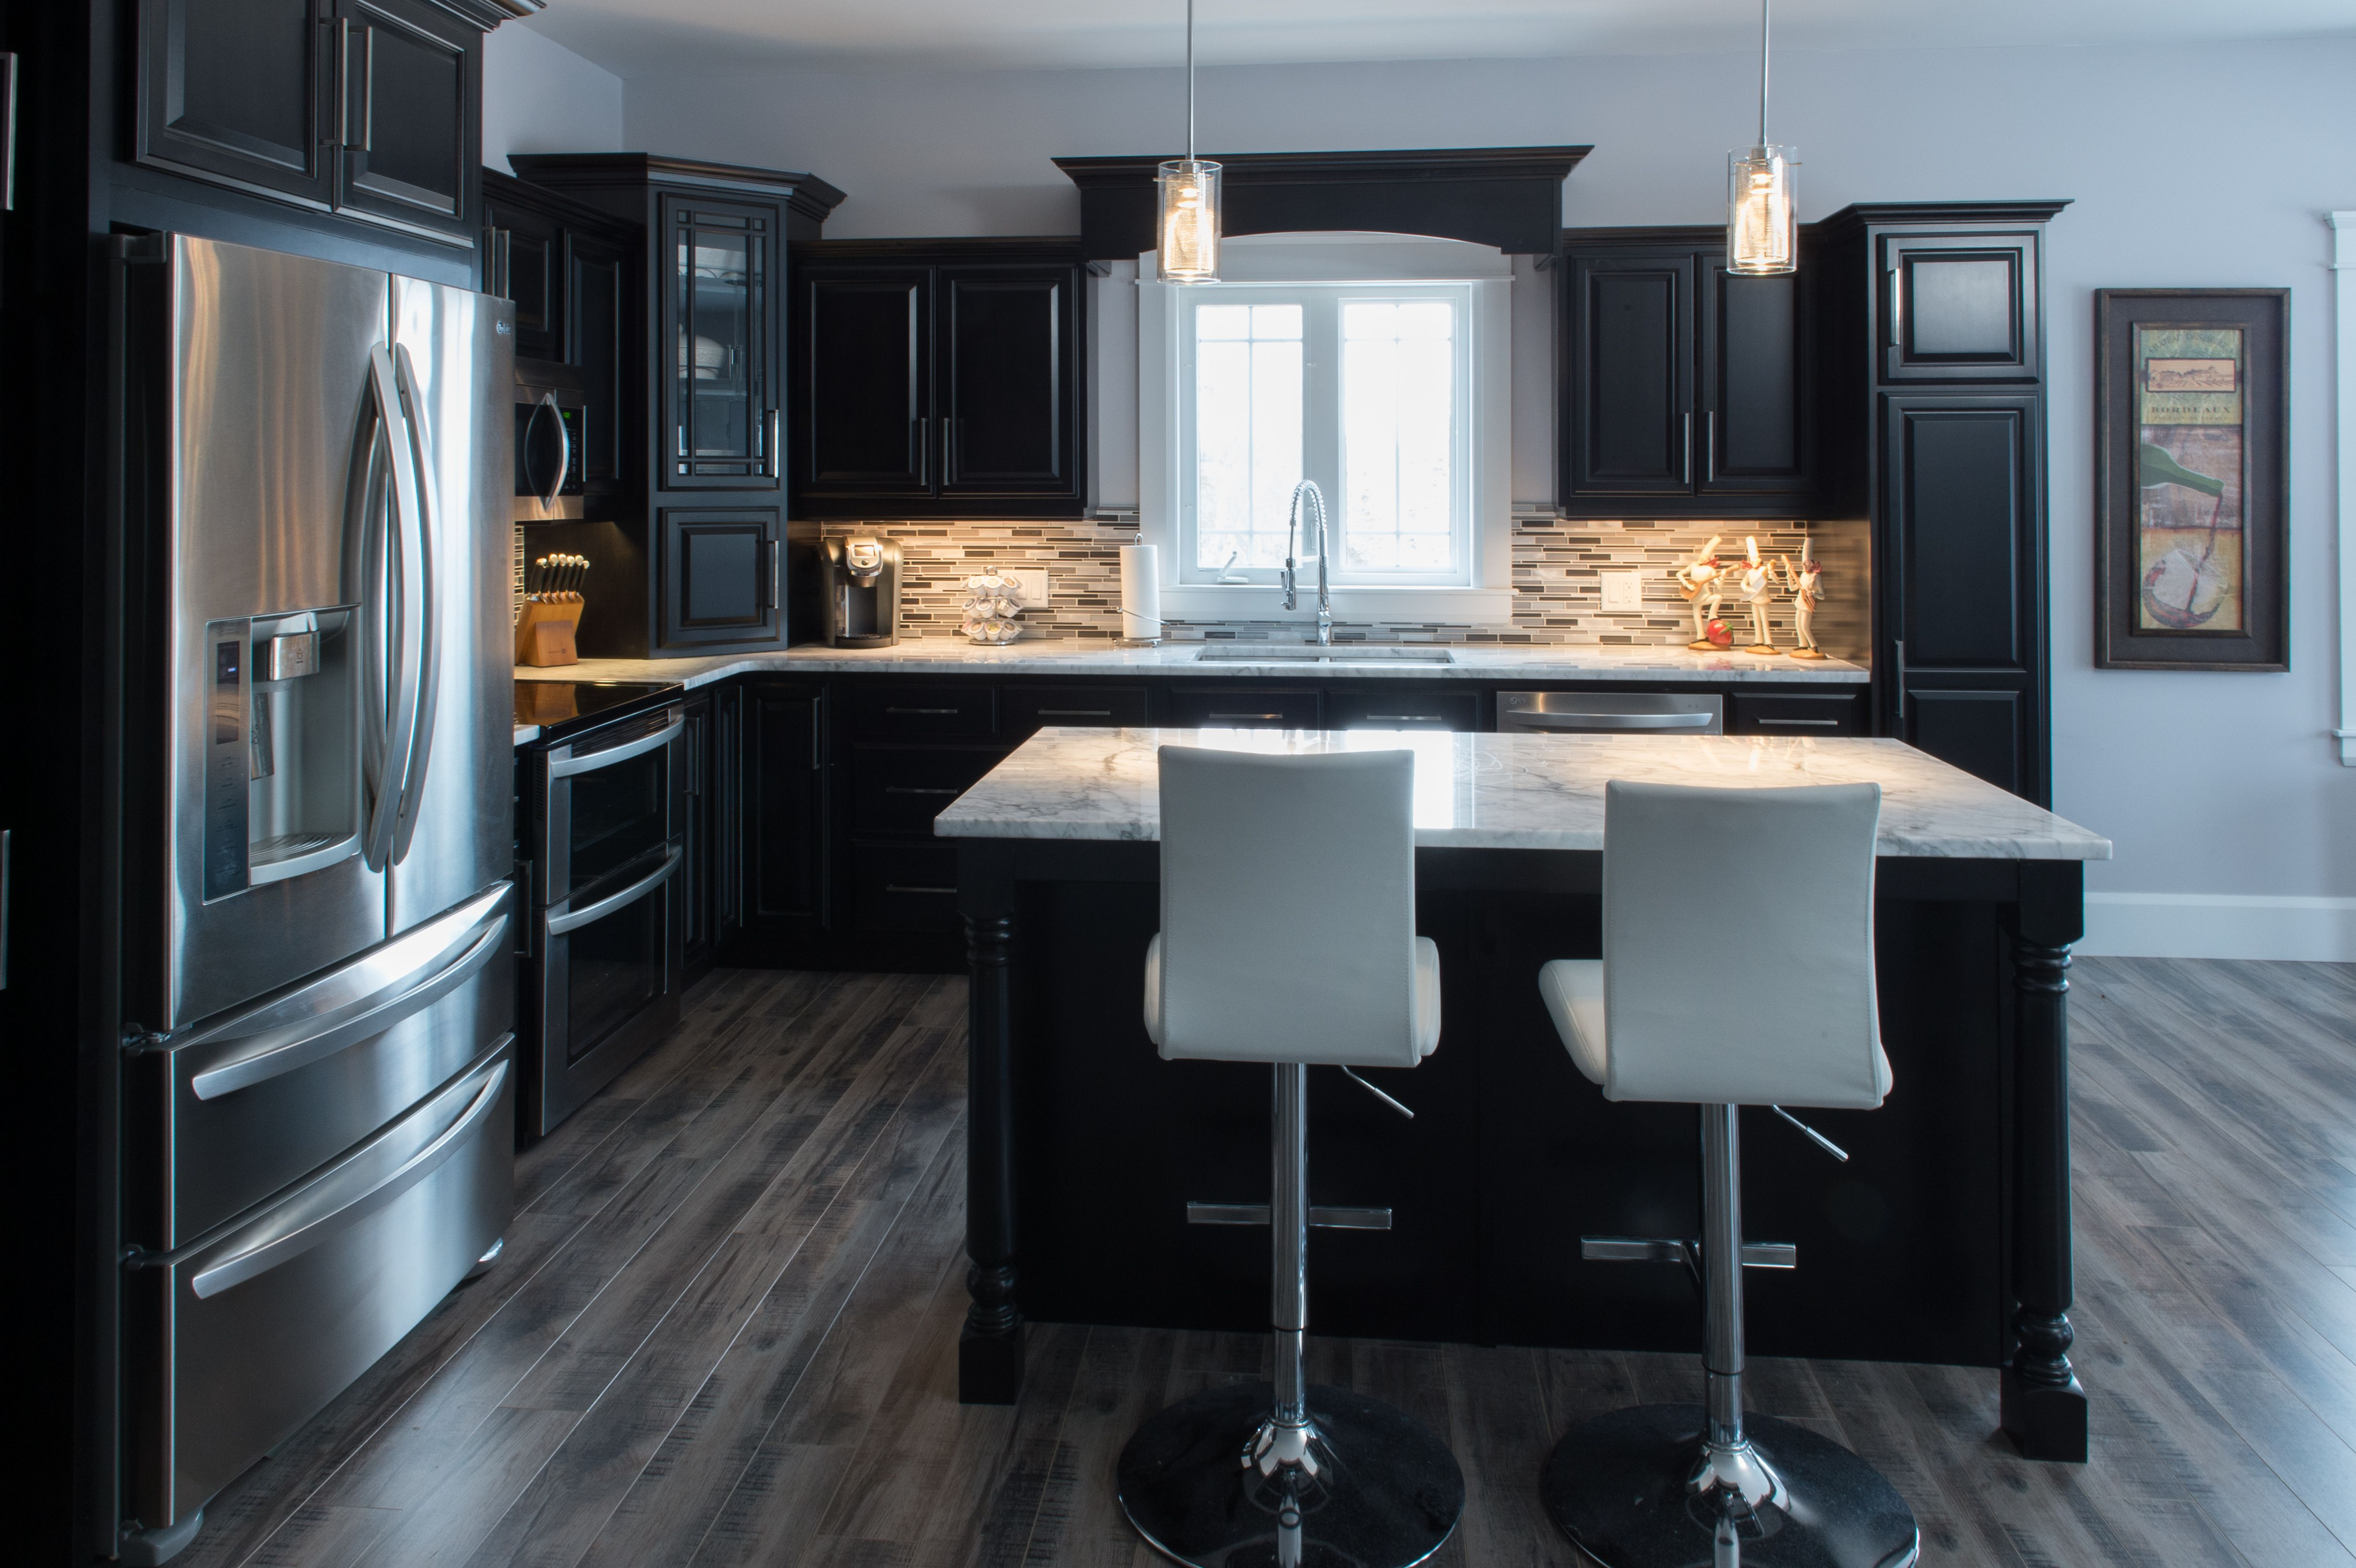 Custom Kitchen Cabinets Designed And Purchased From Hubcraft Timber Mart Come In Custom Kitchen Cabinets Design Custom Kitchen Cabinets Face Frame Cabinets